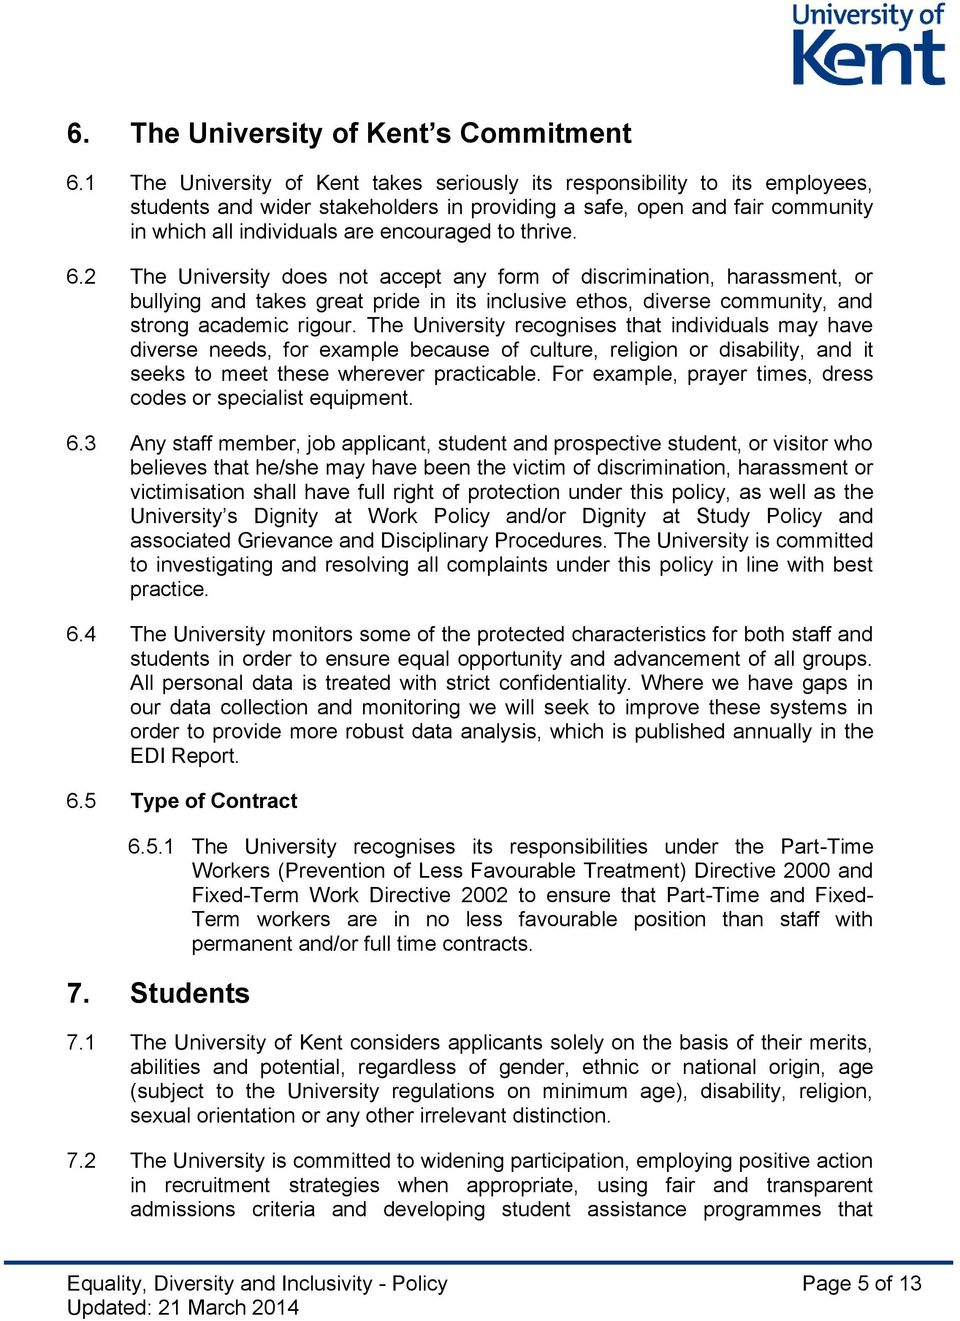 thrive. 6.2 The University does not accept any form of discrimination, harassment, or bullying and takes great pride in its inclusive ethos, diverse community, and strong academic rigour.